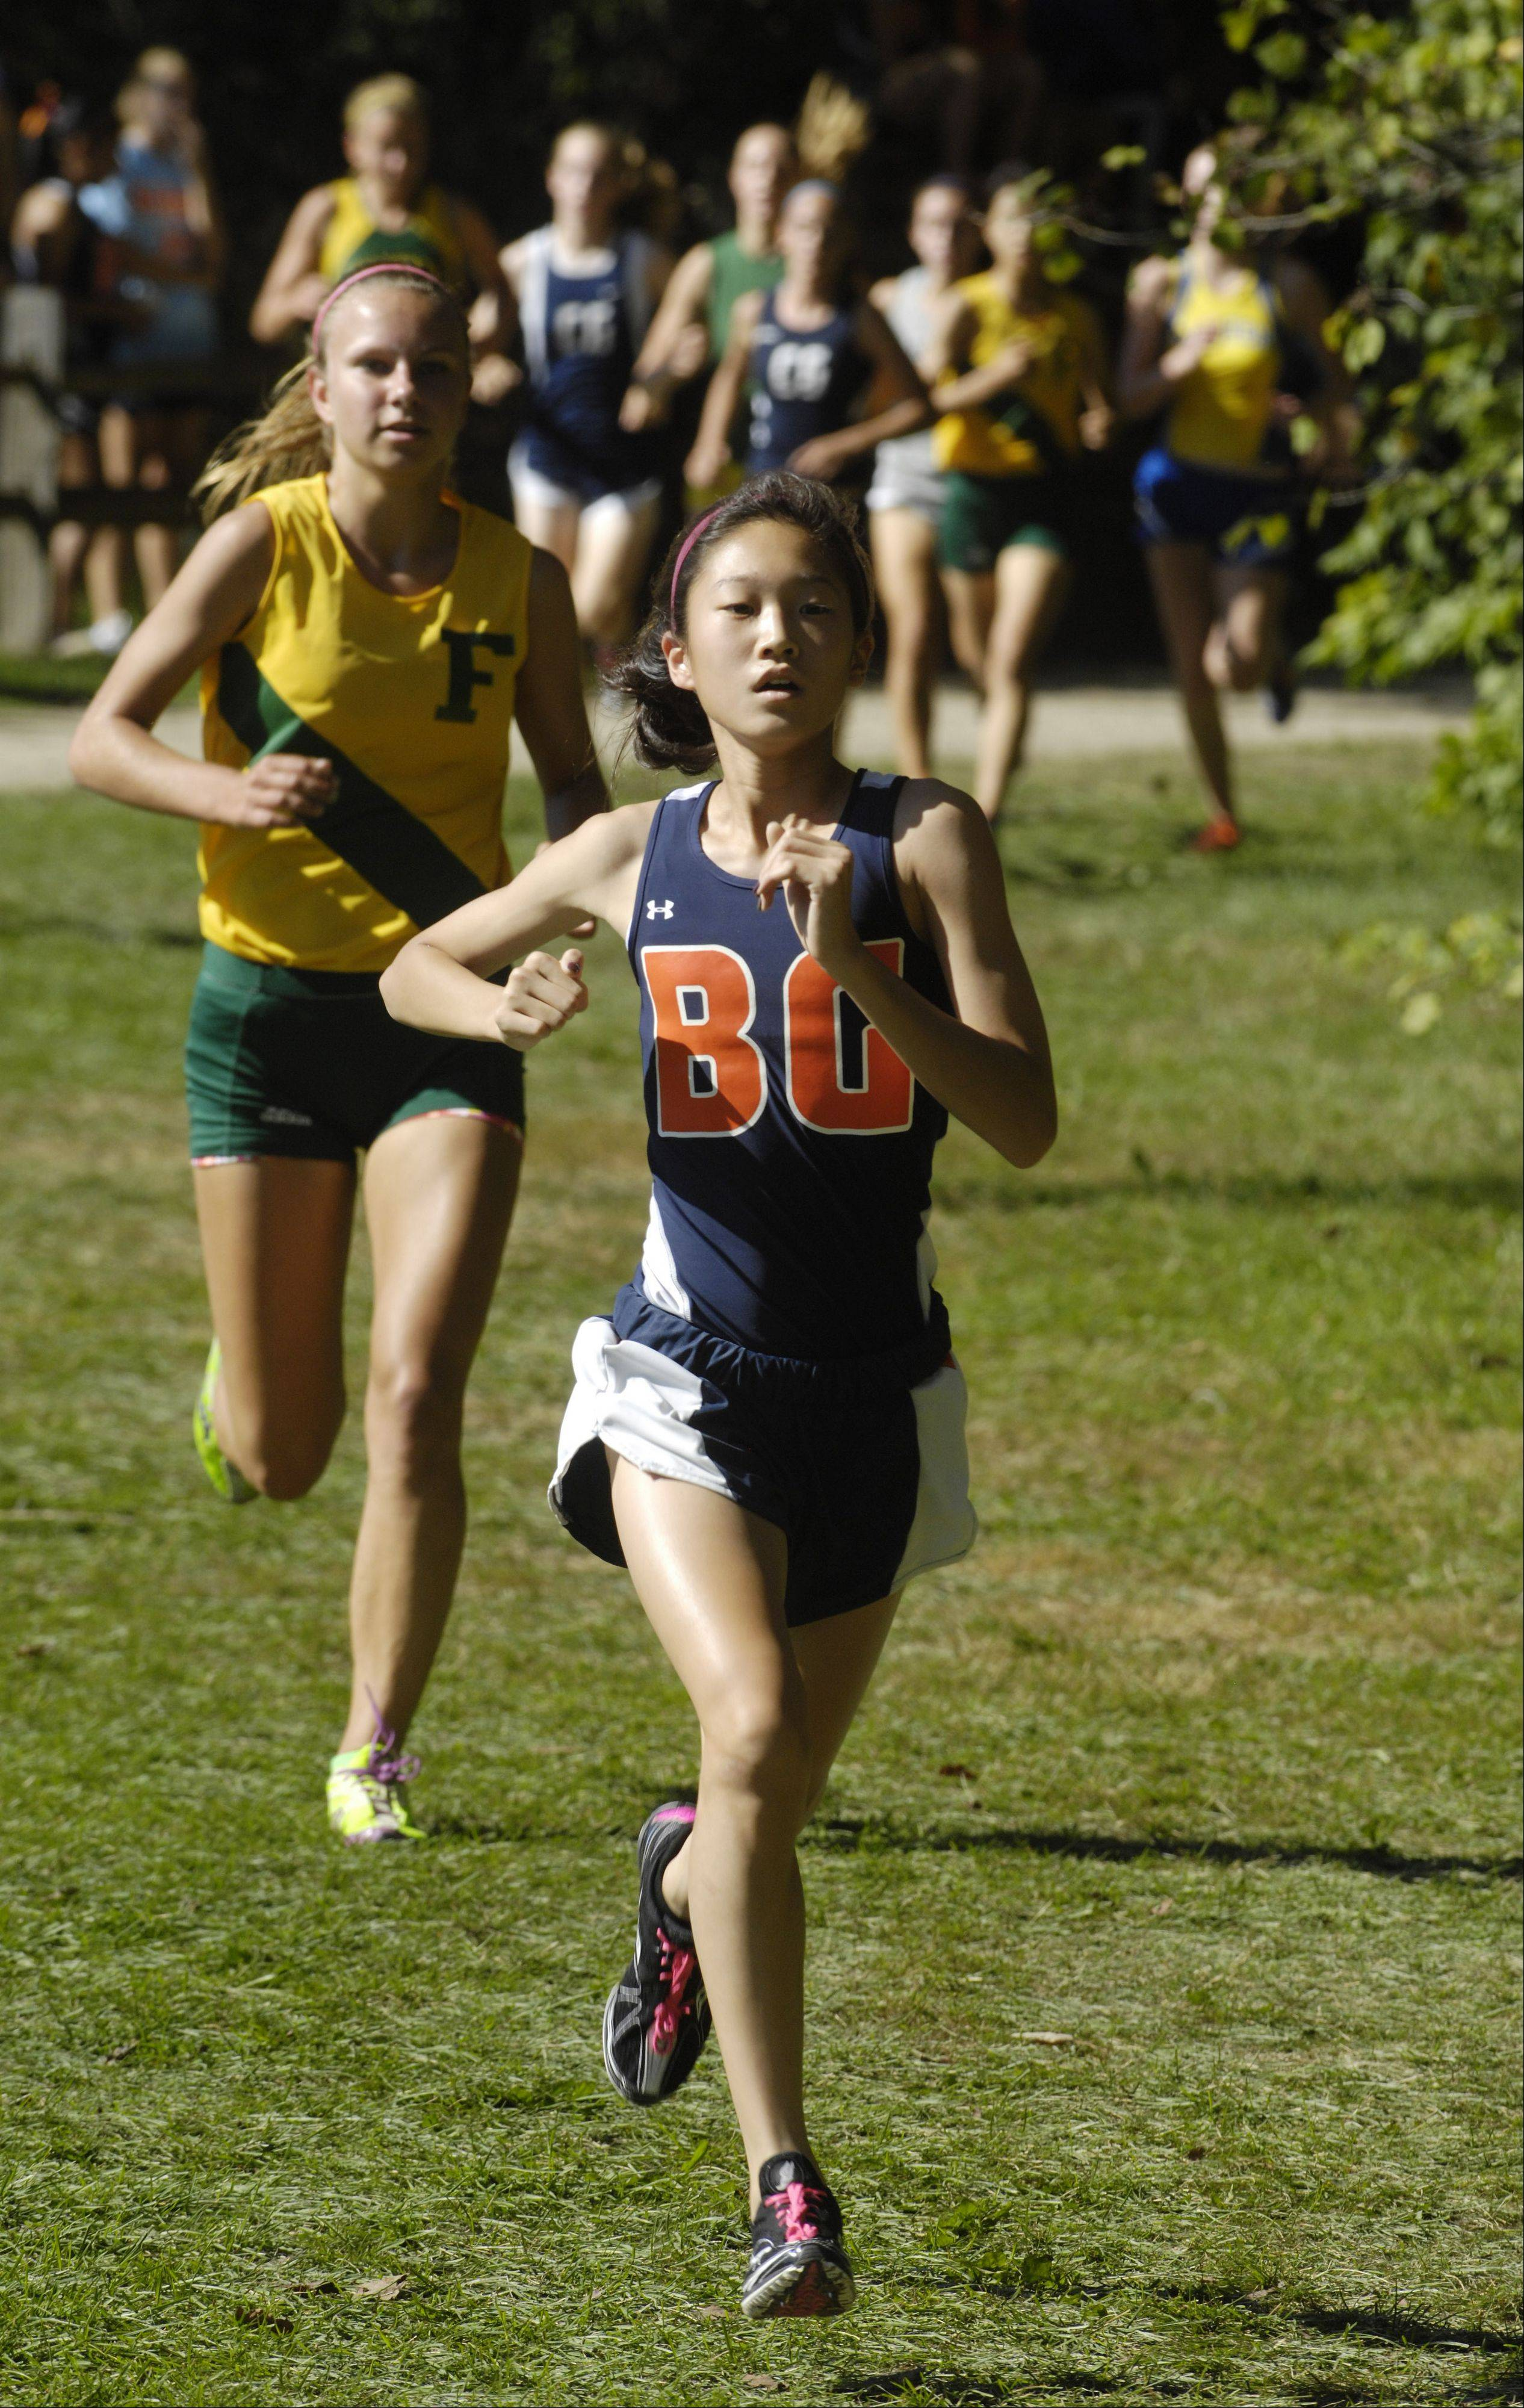 Buffalo Grove's Kaitlyn Ko leads Fremd's Kelly Breen on her way to victory at the Warren cross country invite in Gurnee on Saturday. Breen finished second and led the Vikings to the team title.